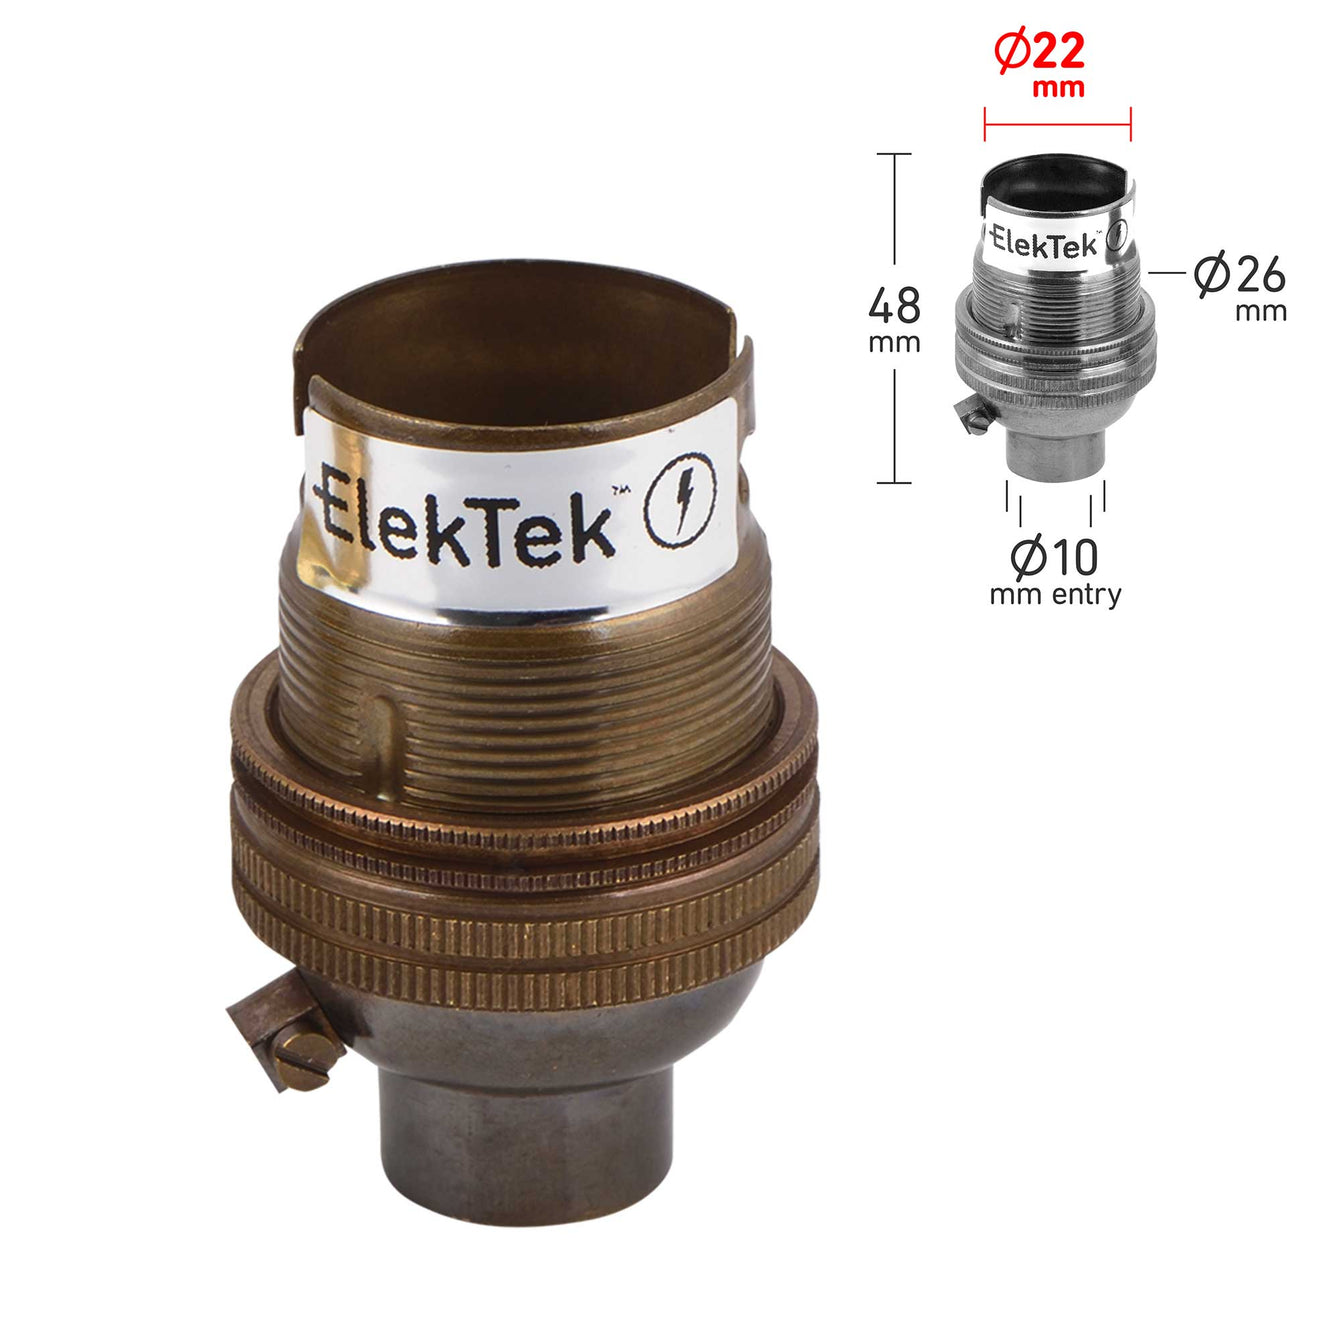 ElekTek Lamp Holder Bayonet Cap B22 Unswitched 10mm or Half Inch Entry With Shade Ring Solid Brass - Buy It Better Brass / Half Inch